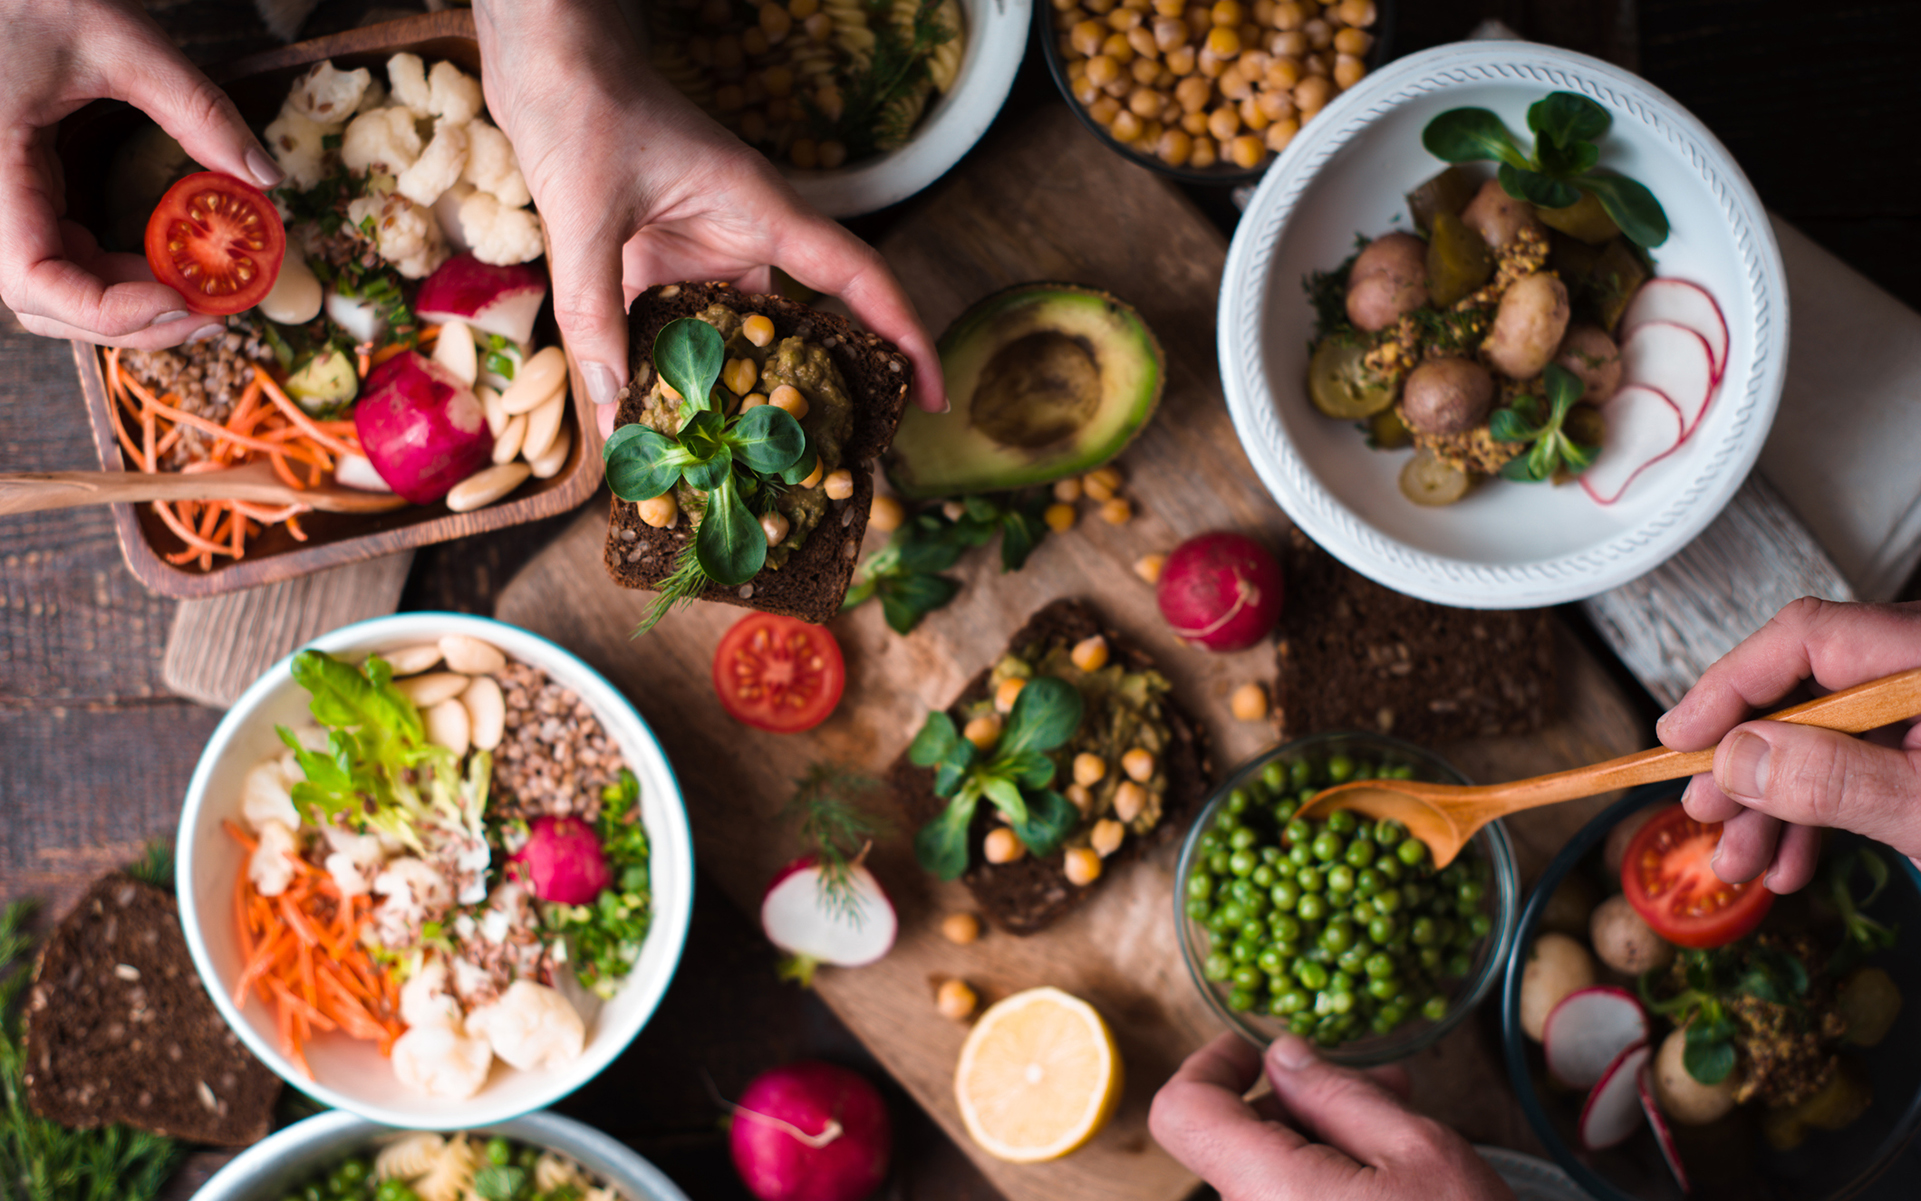 How to Control the Munchies with the Whole30 Diet